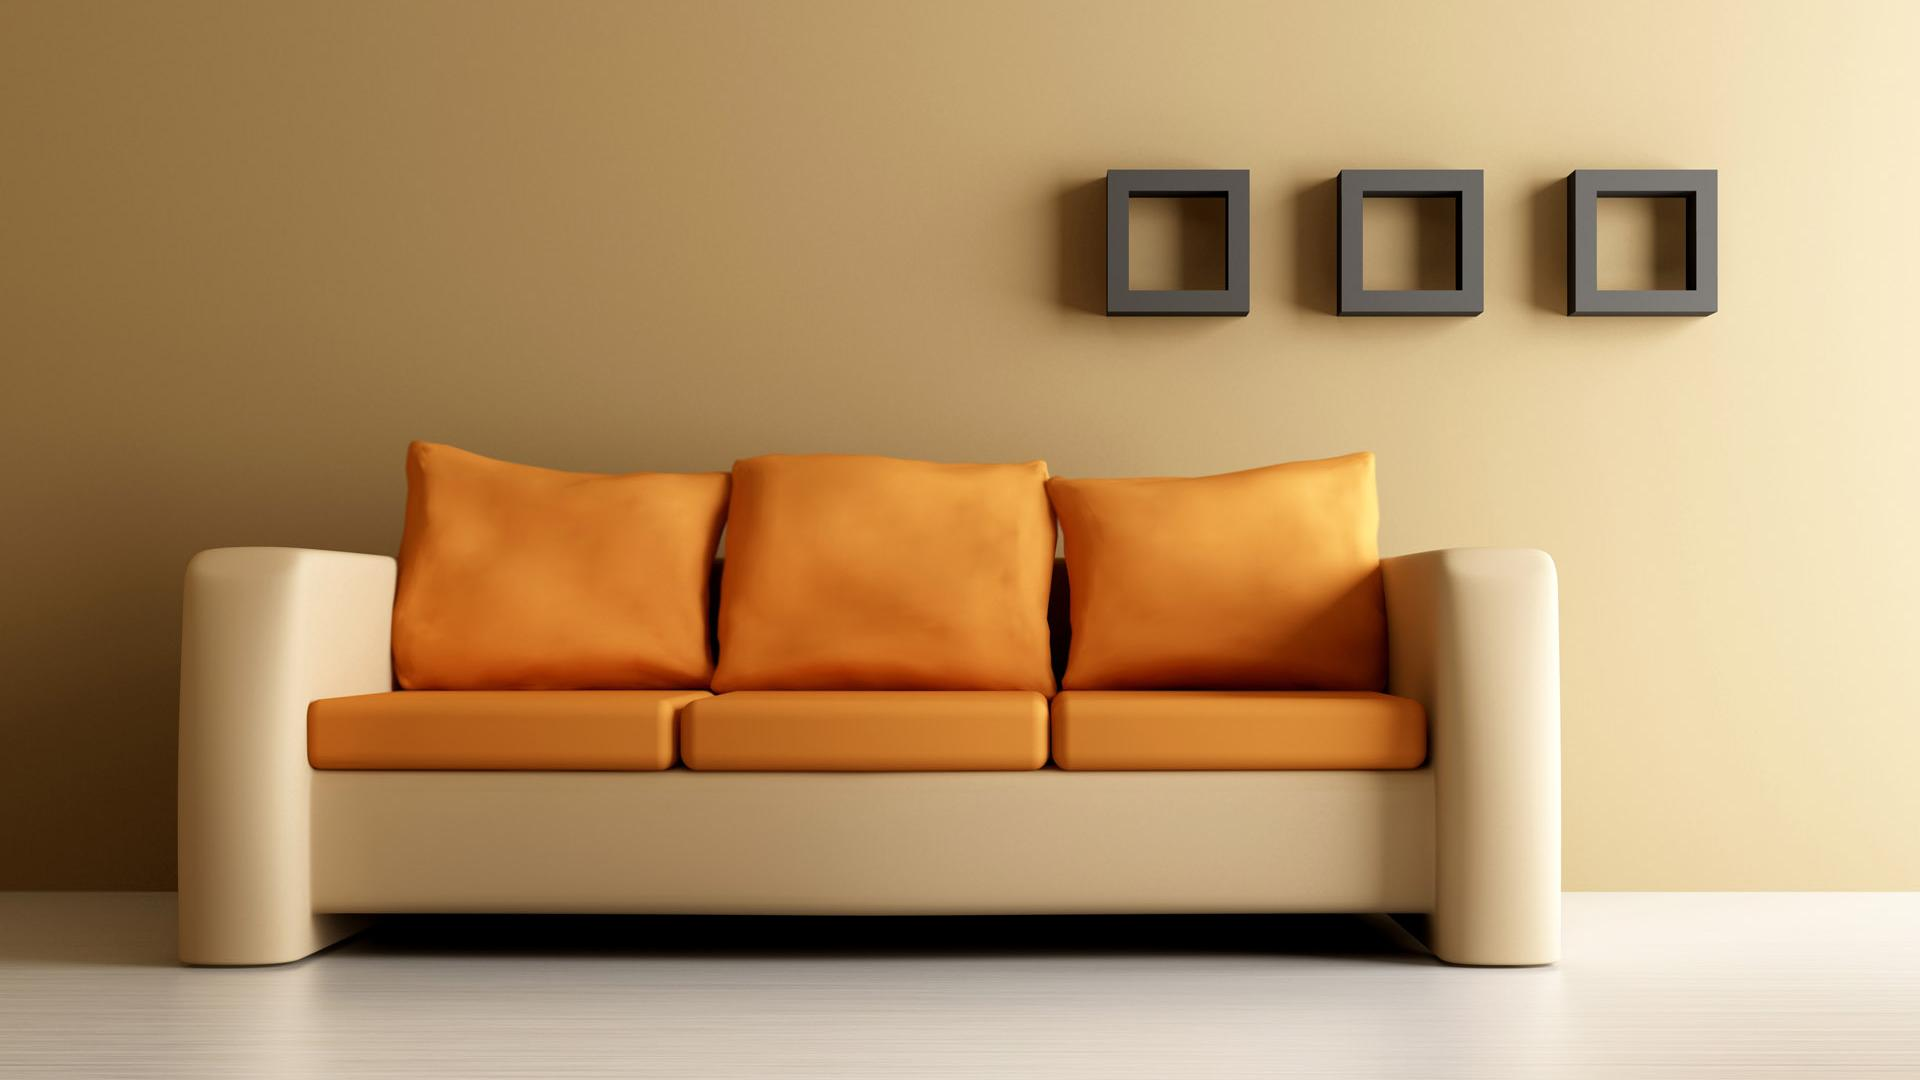 Free Download Interior Design Furniture 1920x1080 For Your